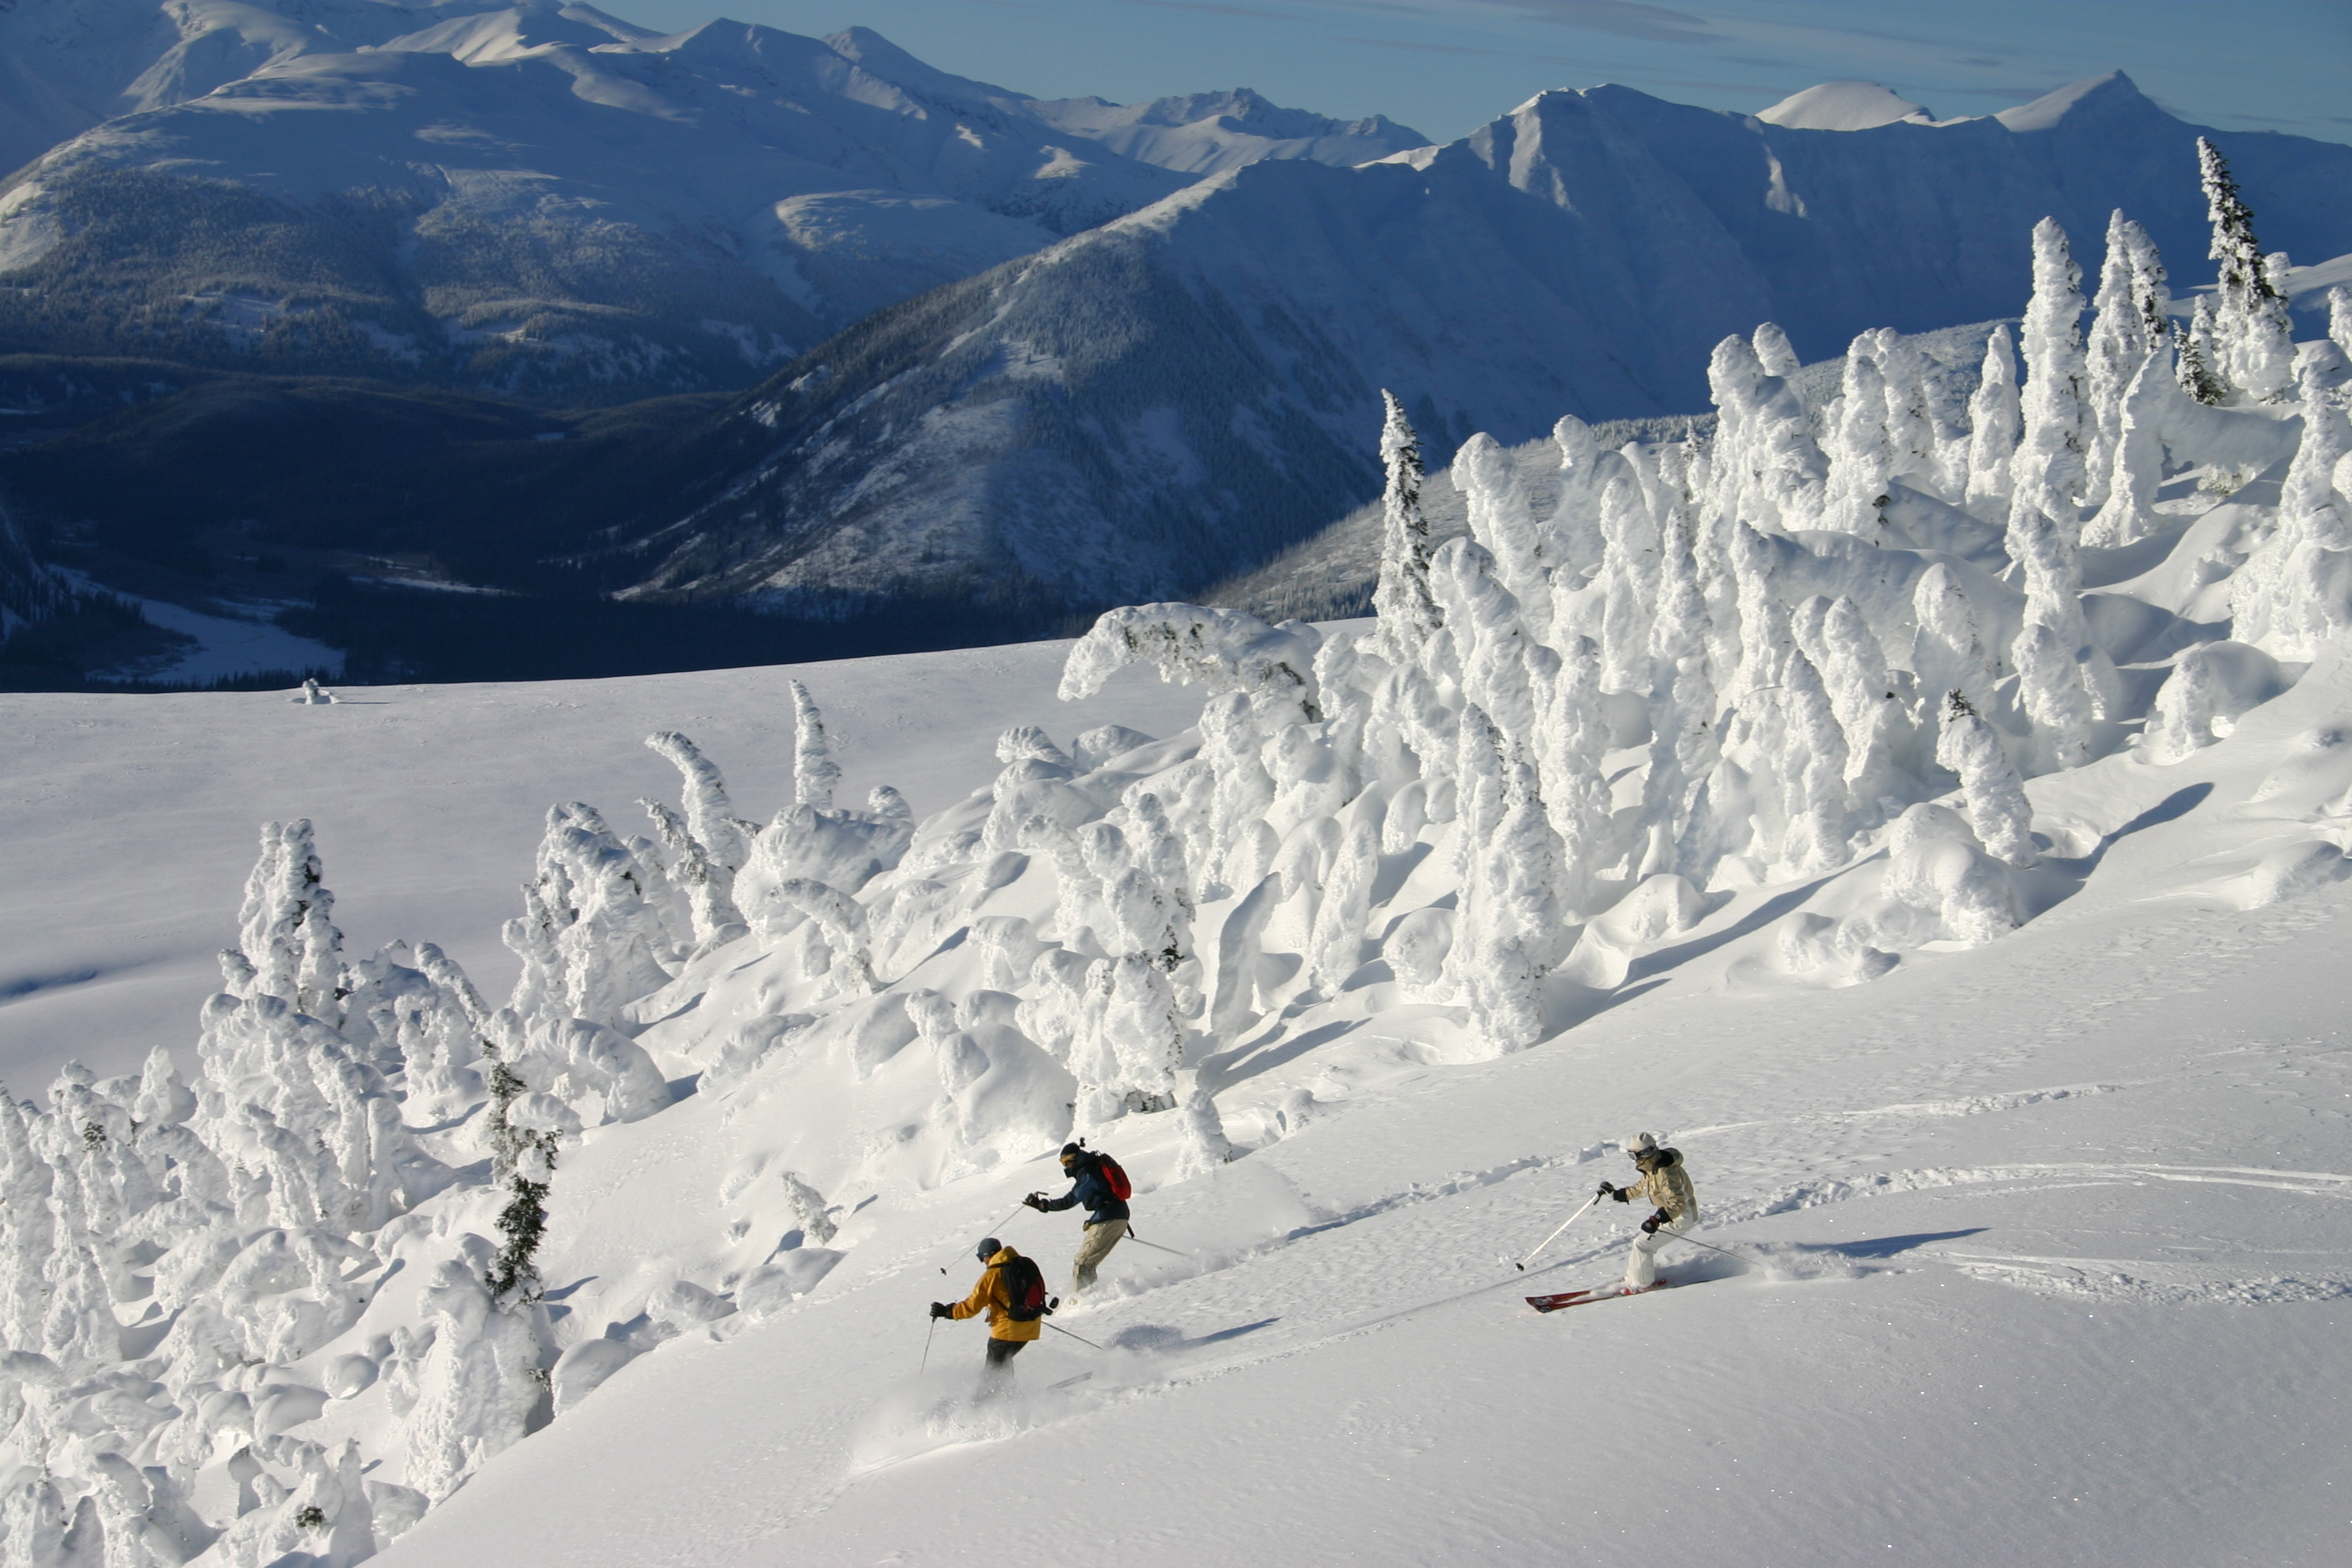 Ski the slopes at Revelstoke